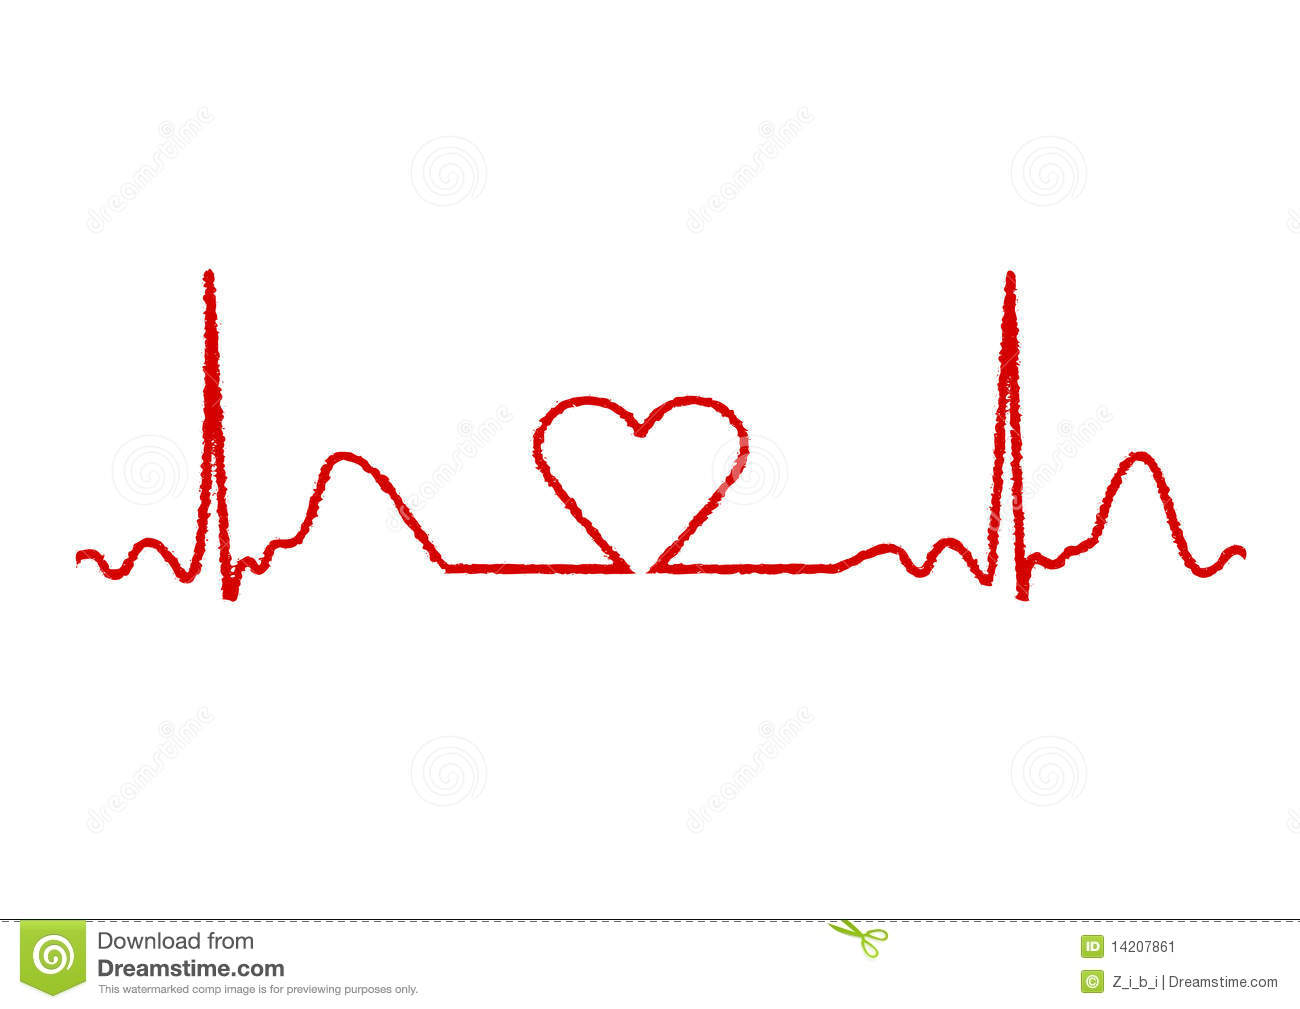 Heart Monitor Stock Vector Image Of Ragged Blood Cardiology 14207861